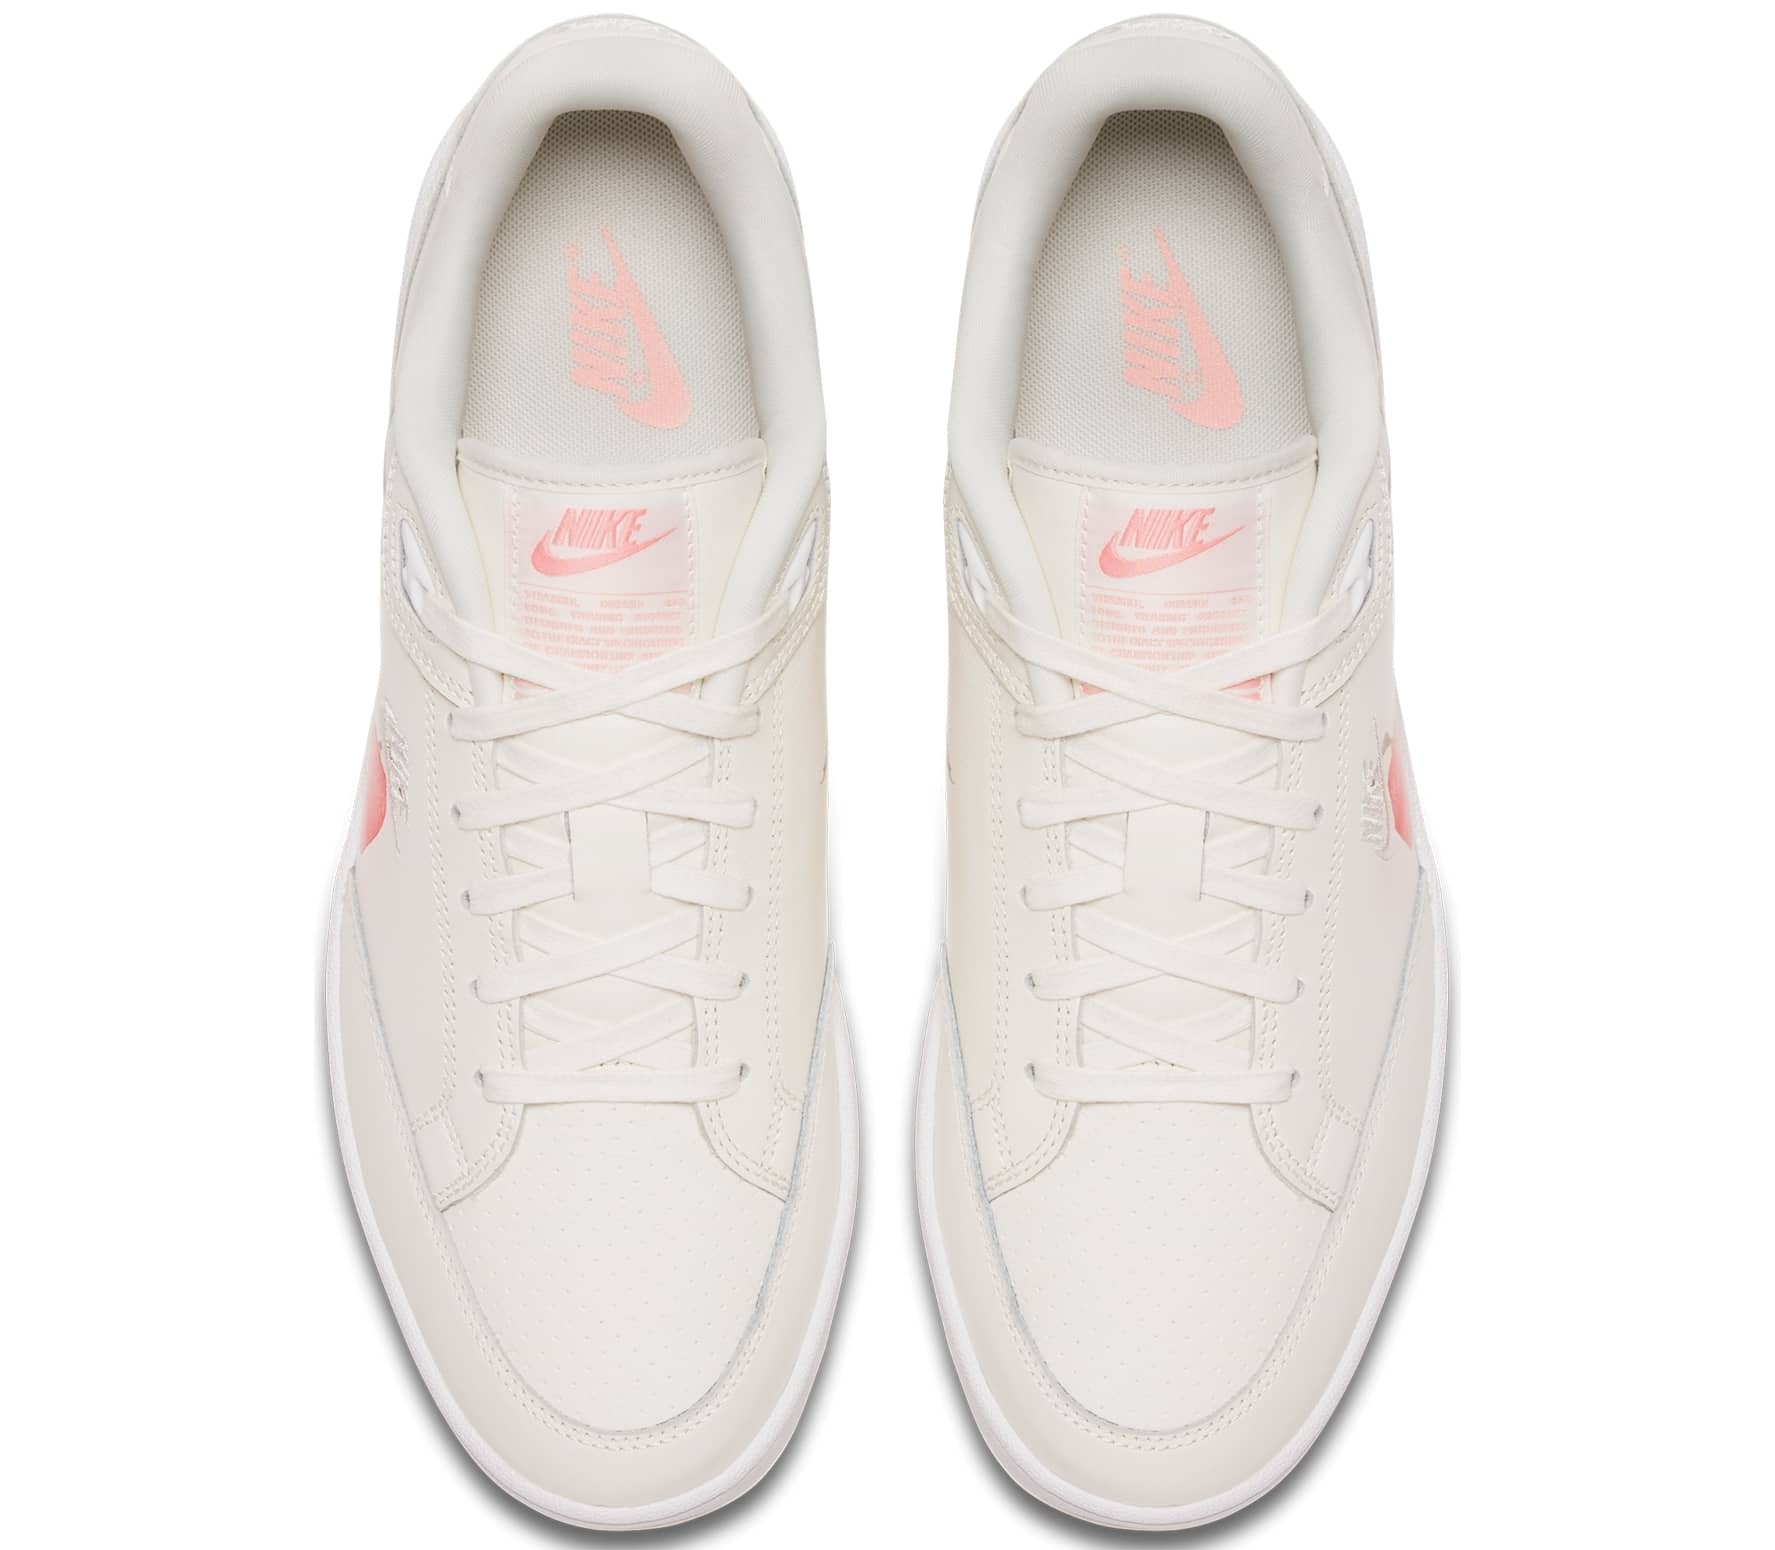 new product fdfdb cffcc Nike - Grandstand II Pinnacle unisex trainers (beige/pink) online ...